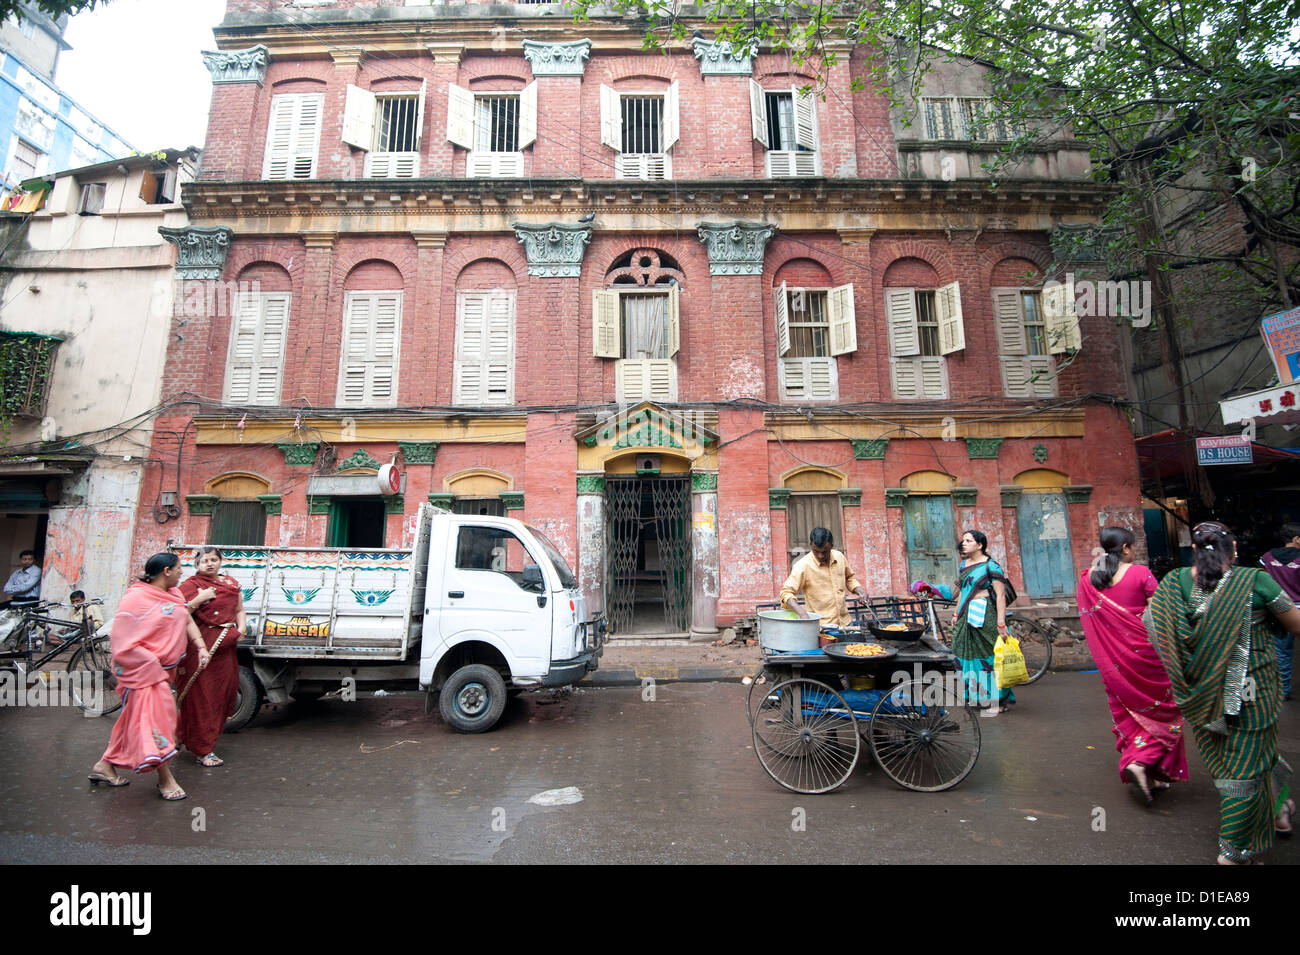 Street snack seller with his wheeled stall outside beautiful old Raj era building in Kolkata back street, West Bengal, - Stock Image